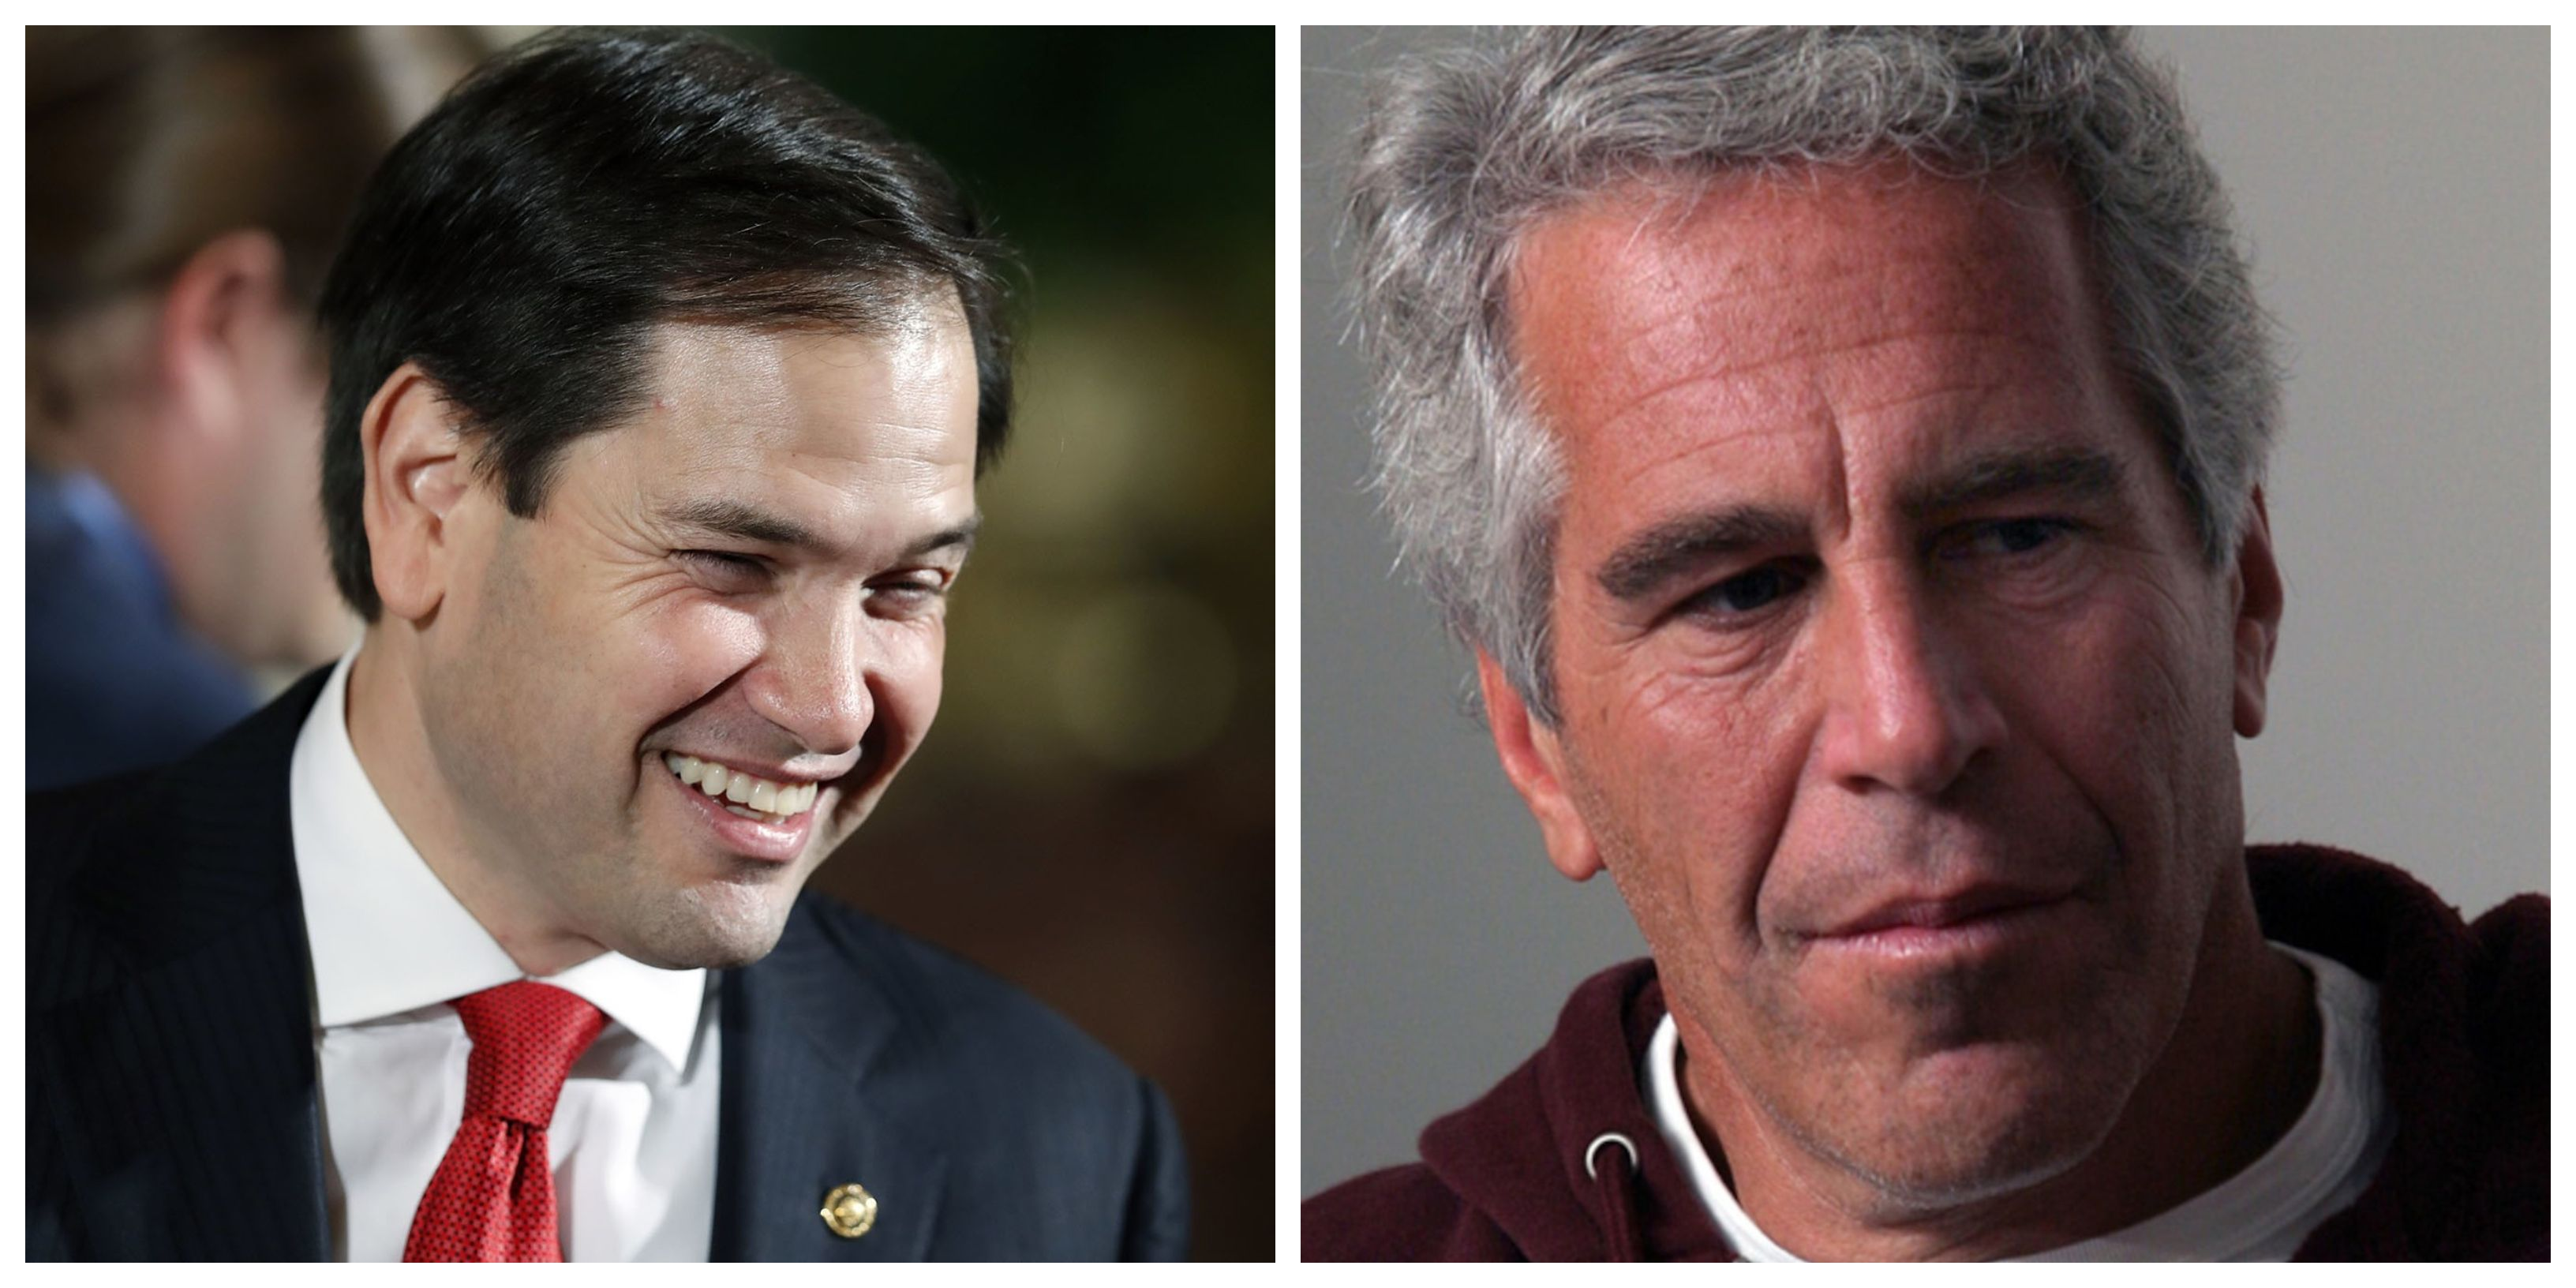 Marco Rubio Blames 'Russian Bots' For Spreading Epstein 'Conspiracies'